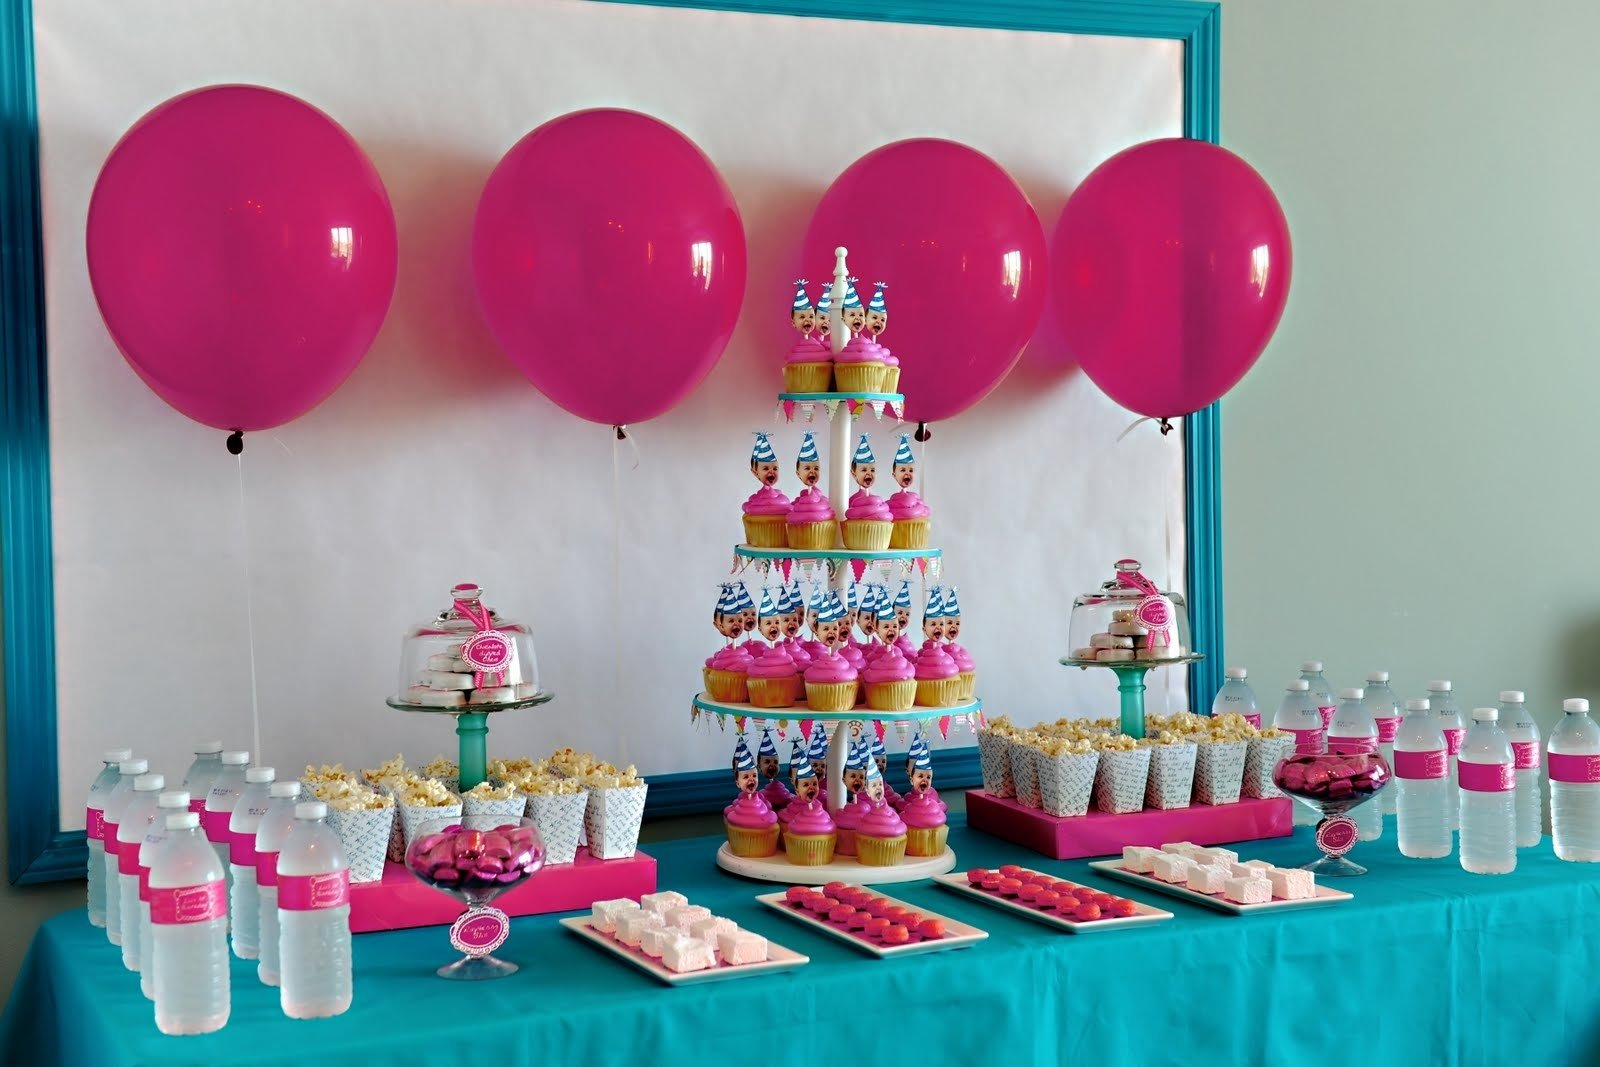 10 Elegant Birthday Ideas For 8 Year Old Daughter Themes Gift My